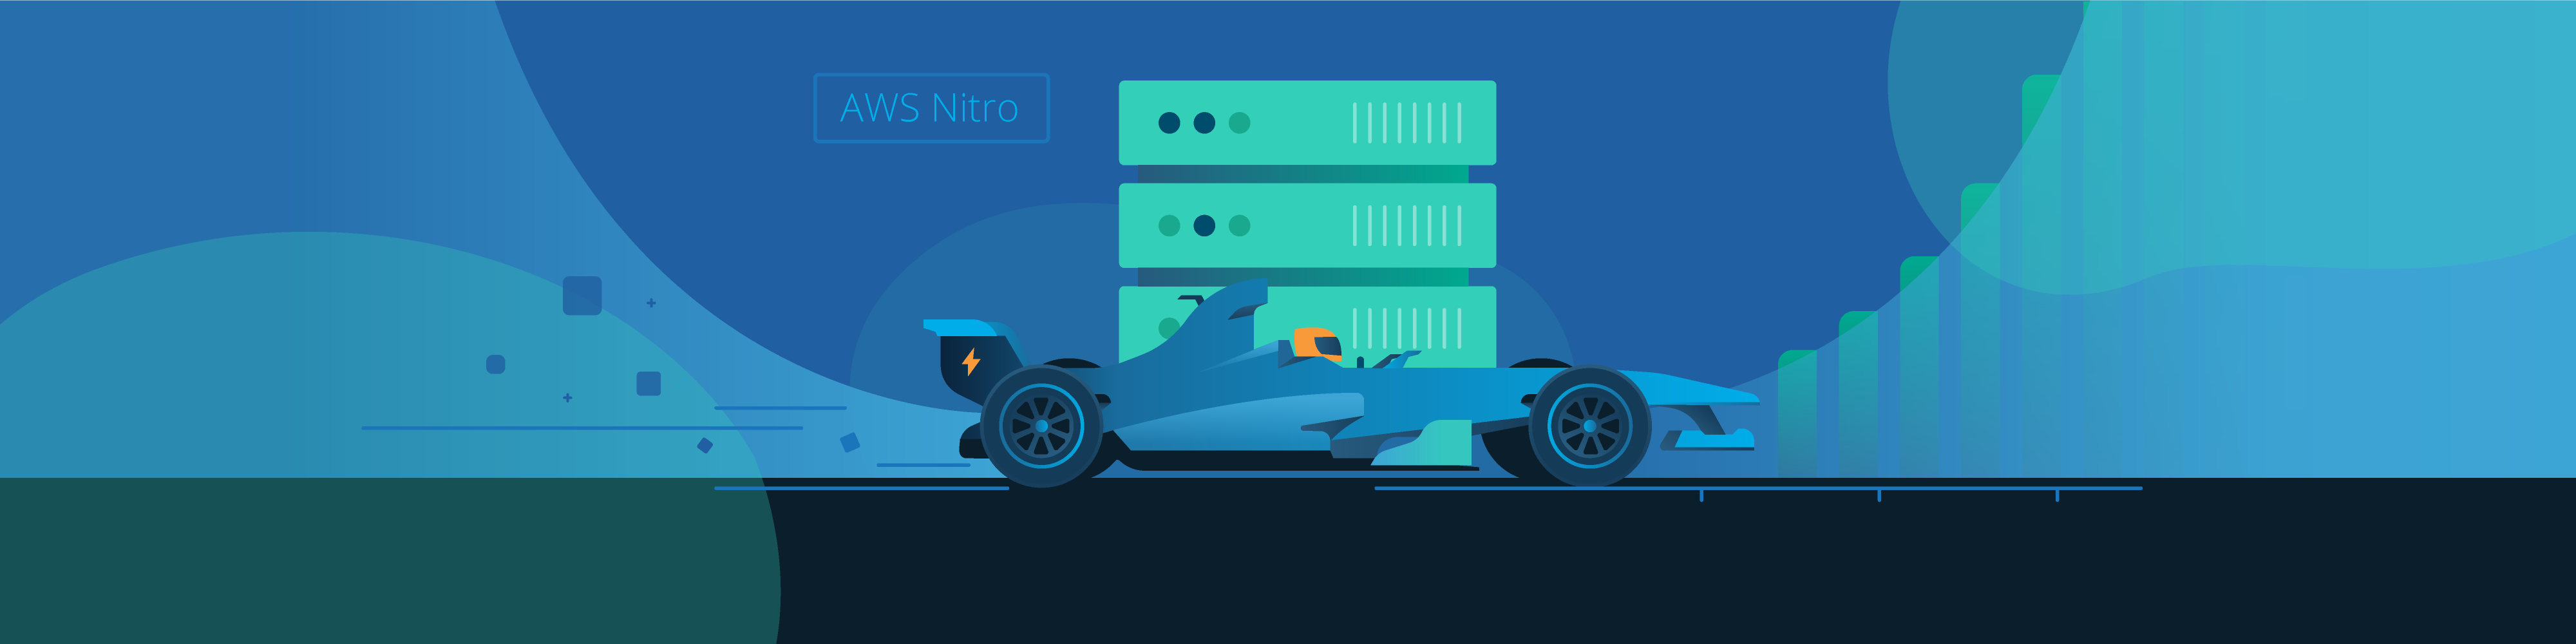 AWS Nitro—What Are AWS Nitro Instances, and Why Use Them